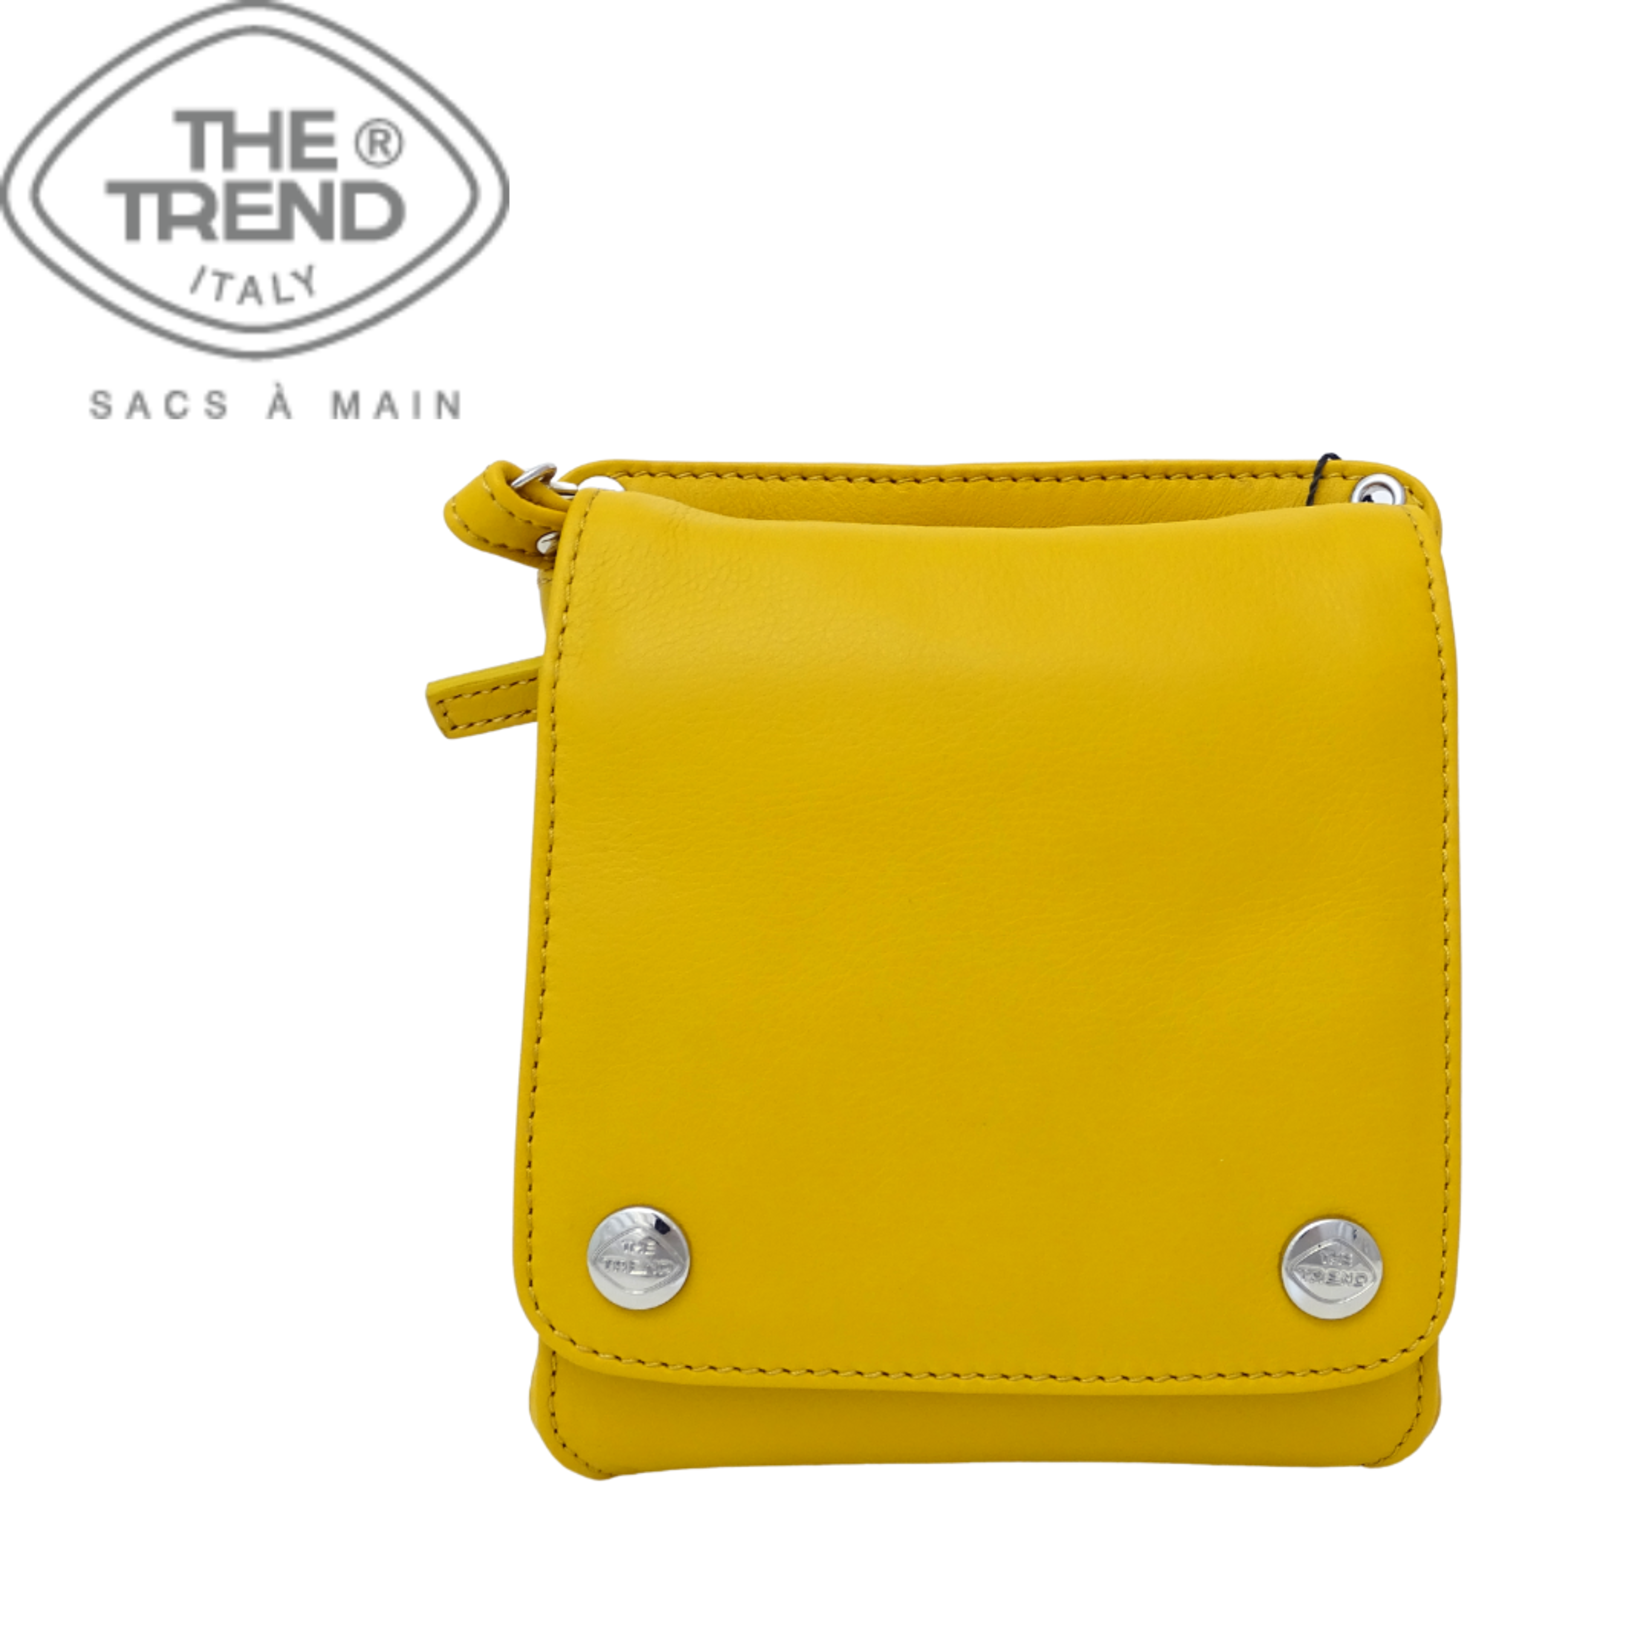 The Trend The Trend 585517 mustard